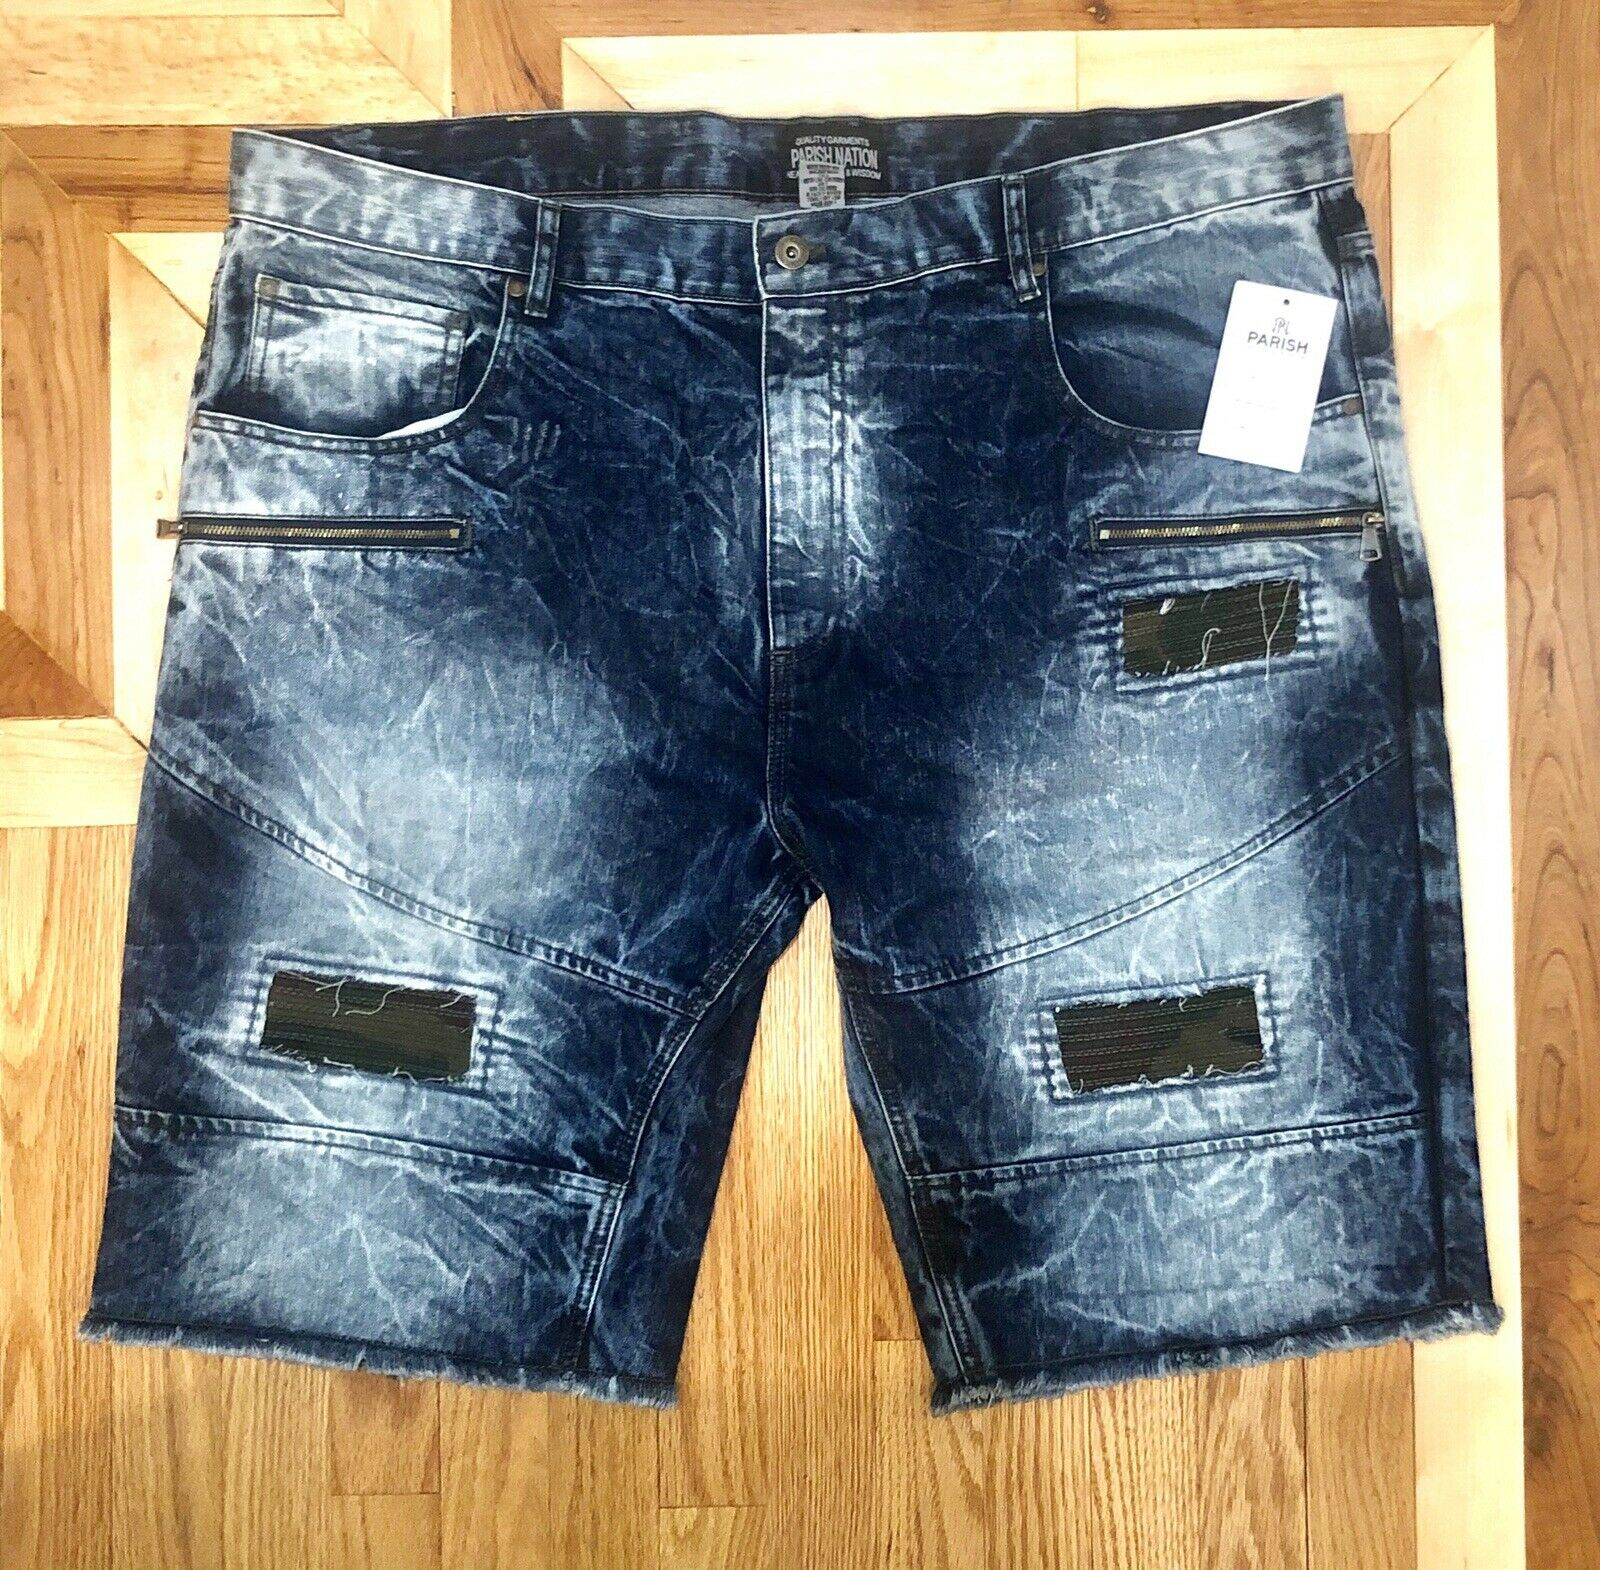 Parish Nation Denim Shorts Mens 46 Distressed Destroyed Bleached Indigo Wash NWT